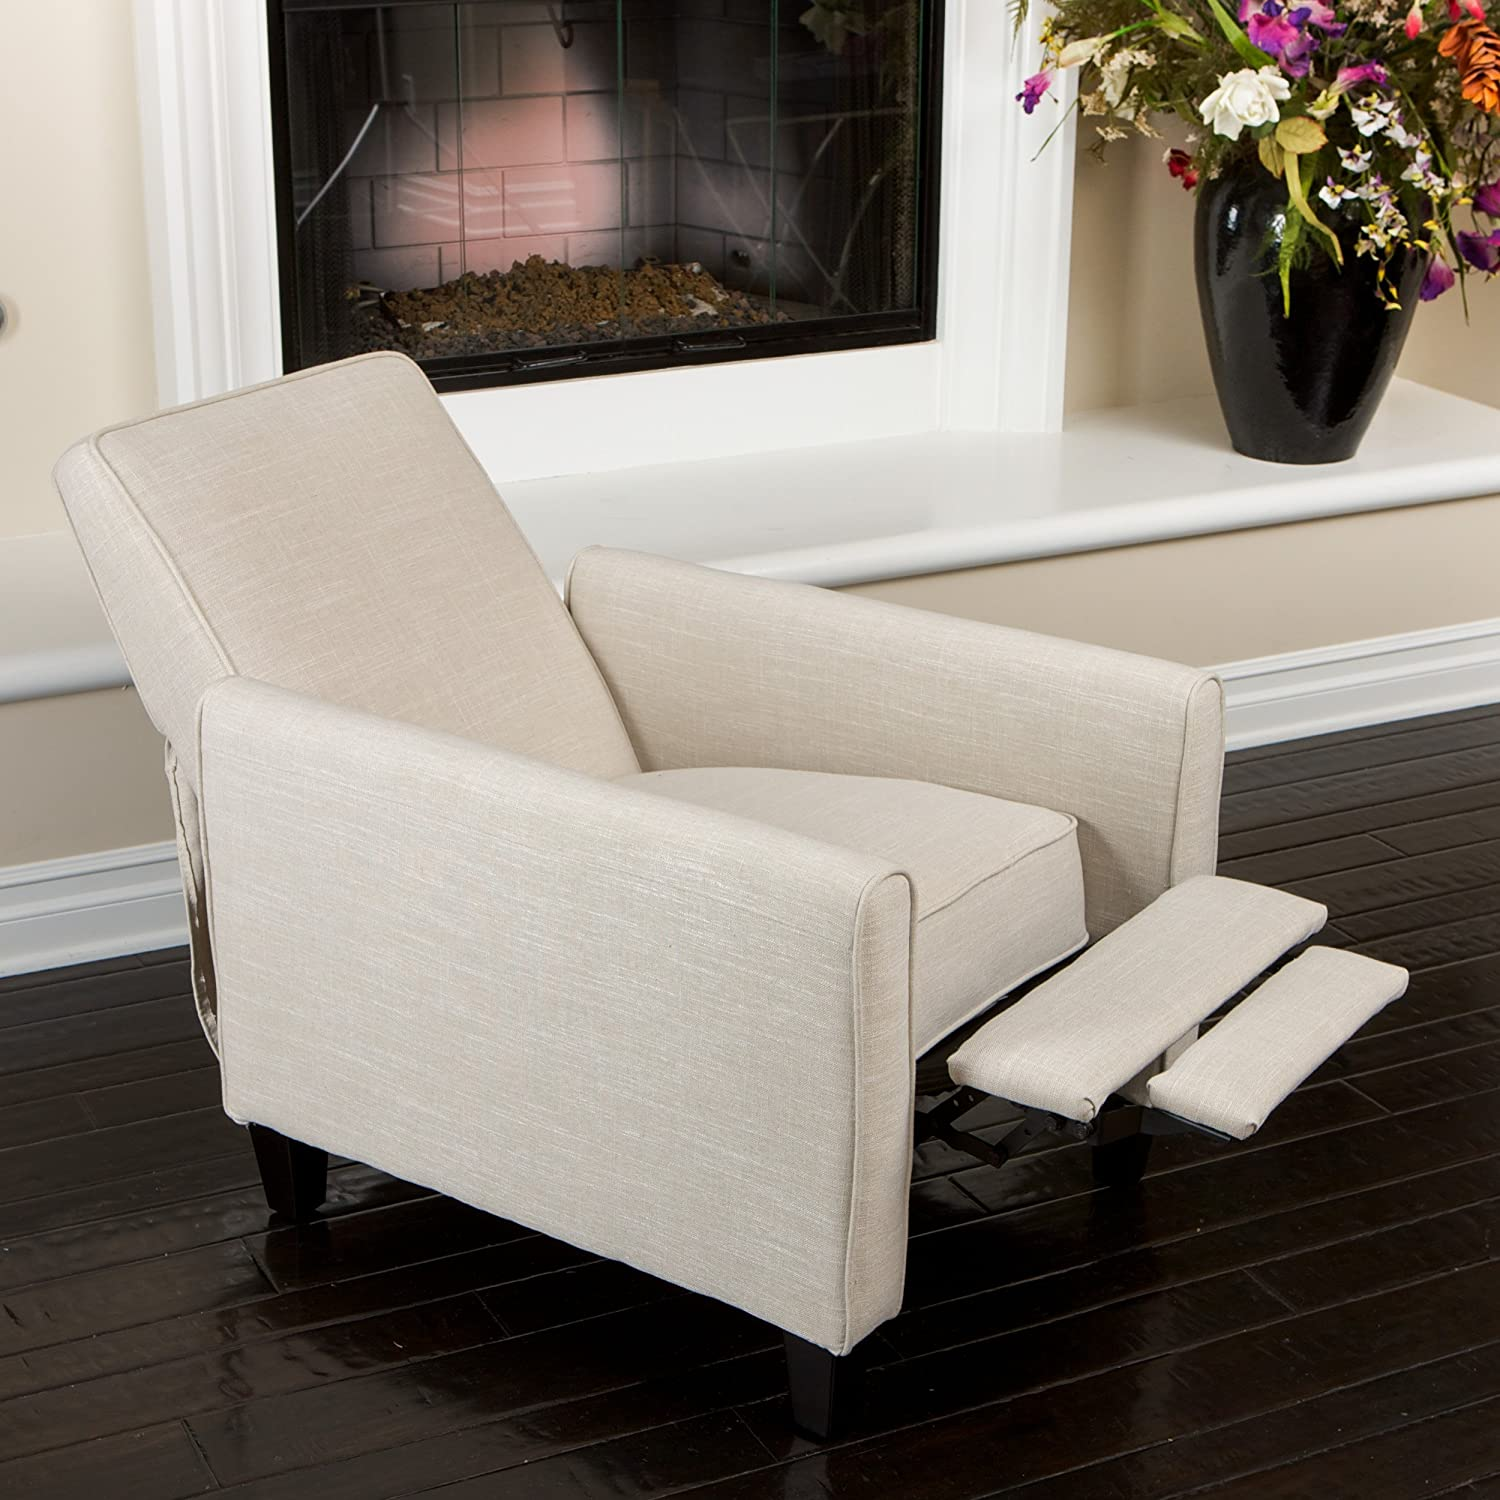 darvis leather recliner club chair brown christopher knight home ikea mellby covers 224737 lucas saving